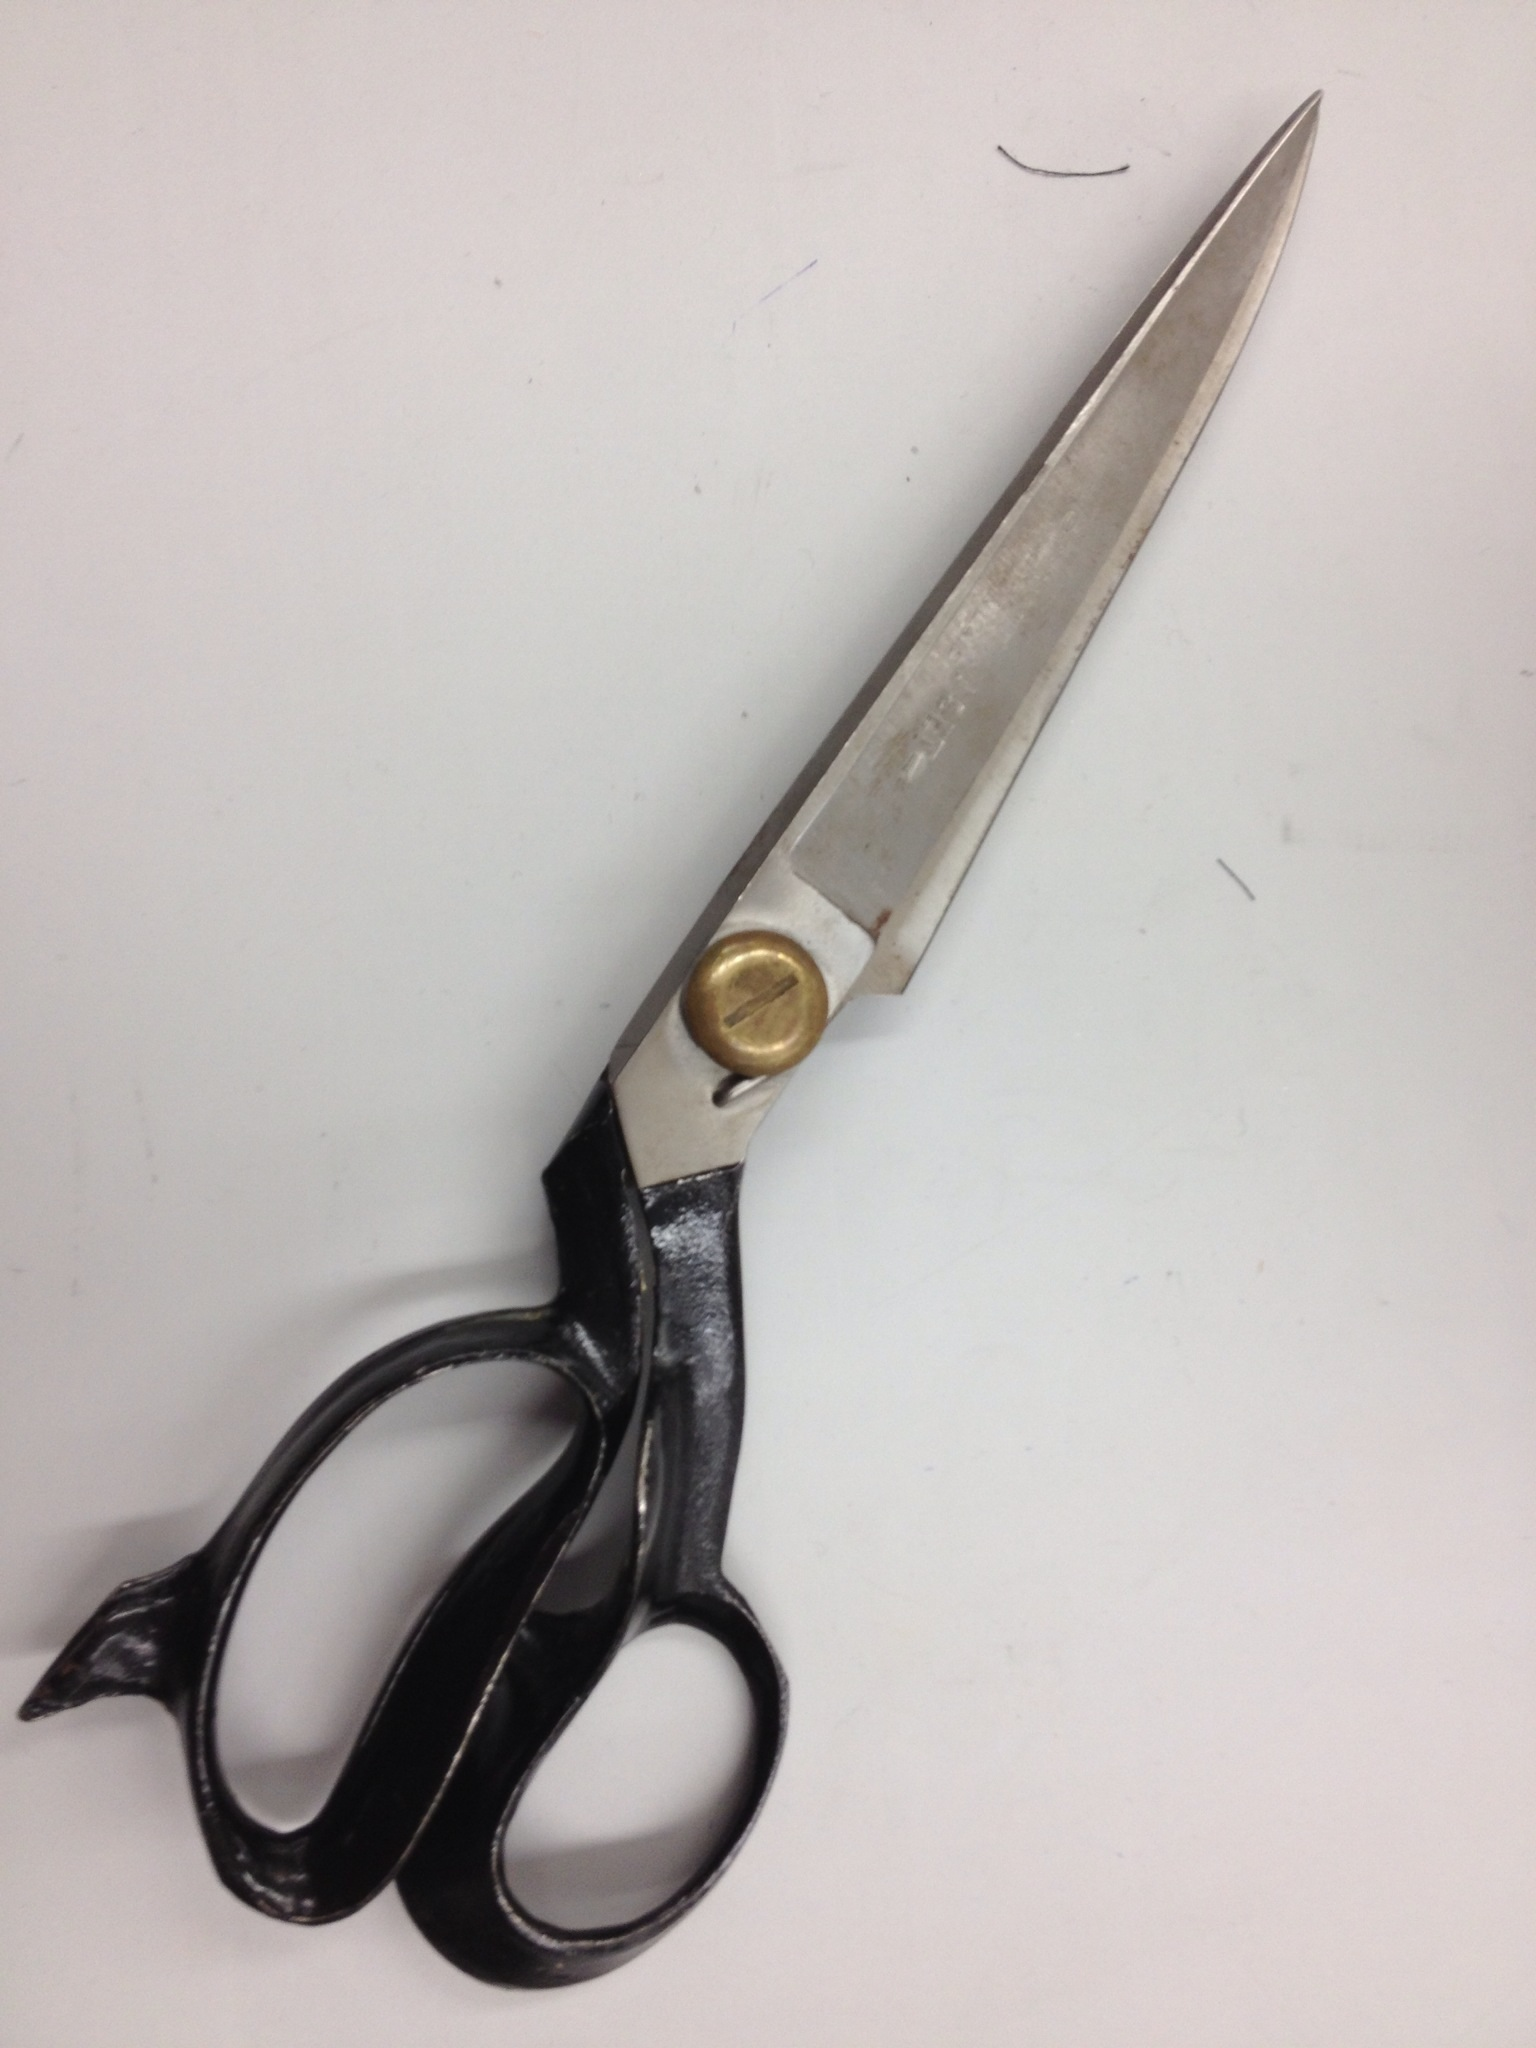 Most awesome scissors ever